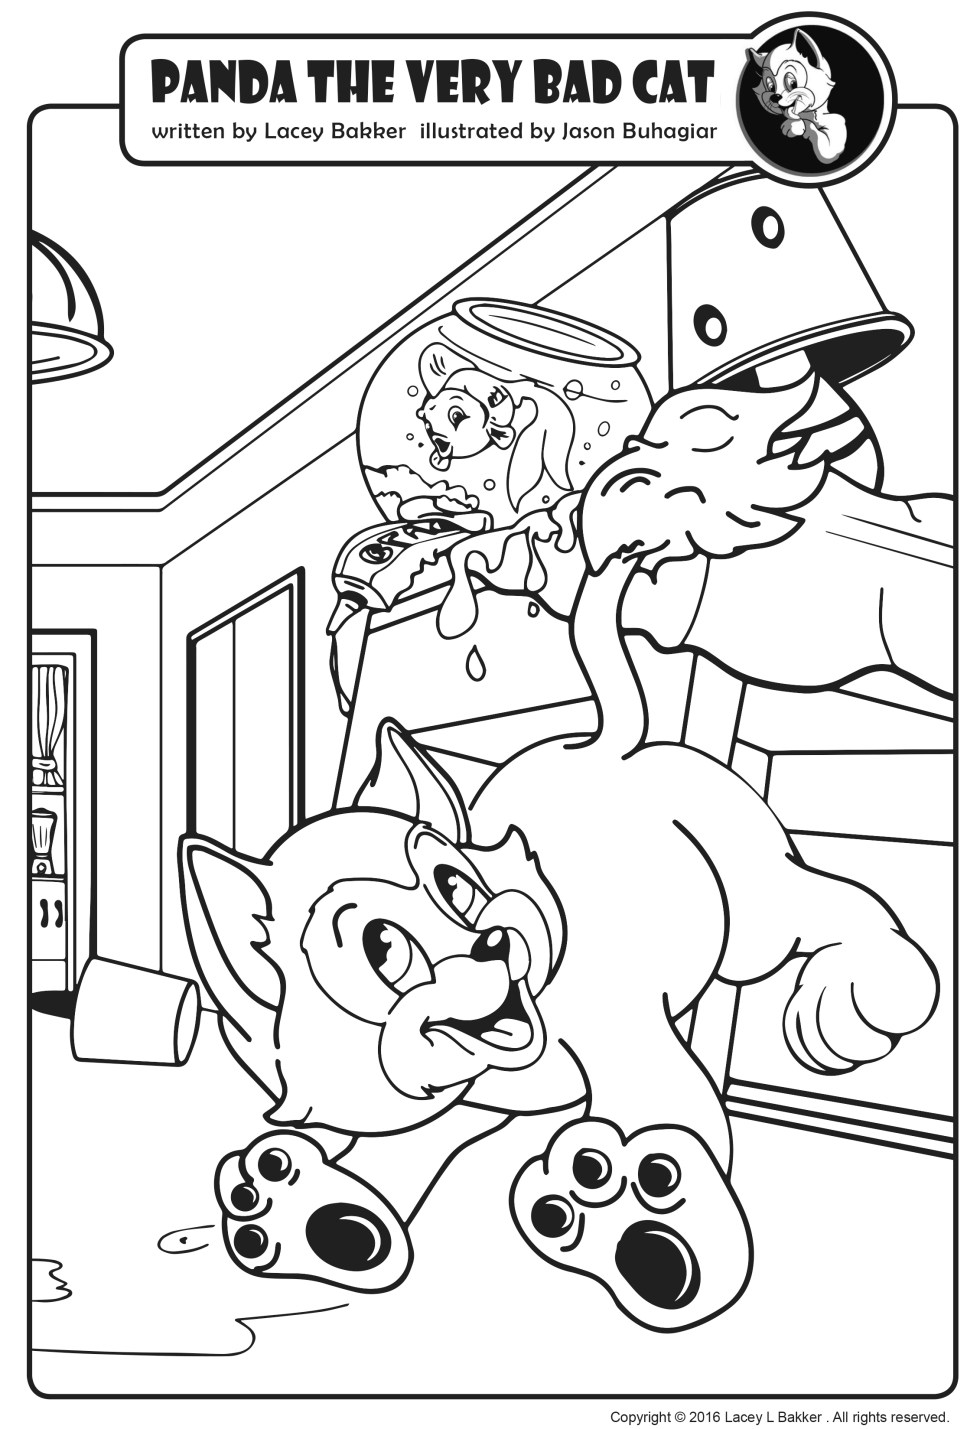 COLORINGPAGES-1 (1)